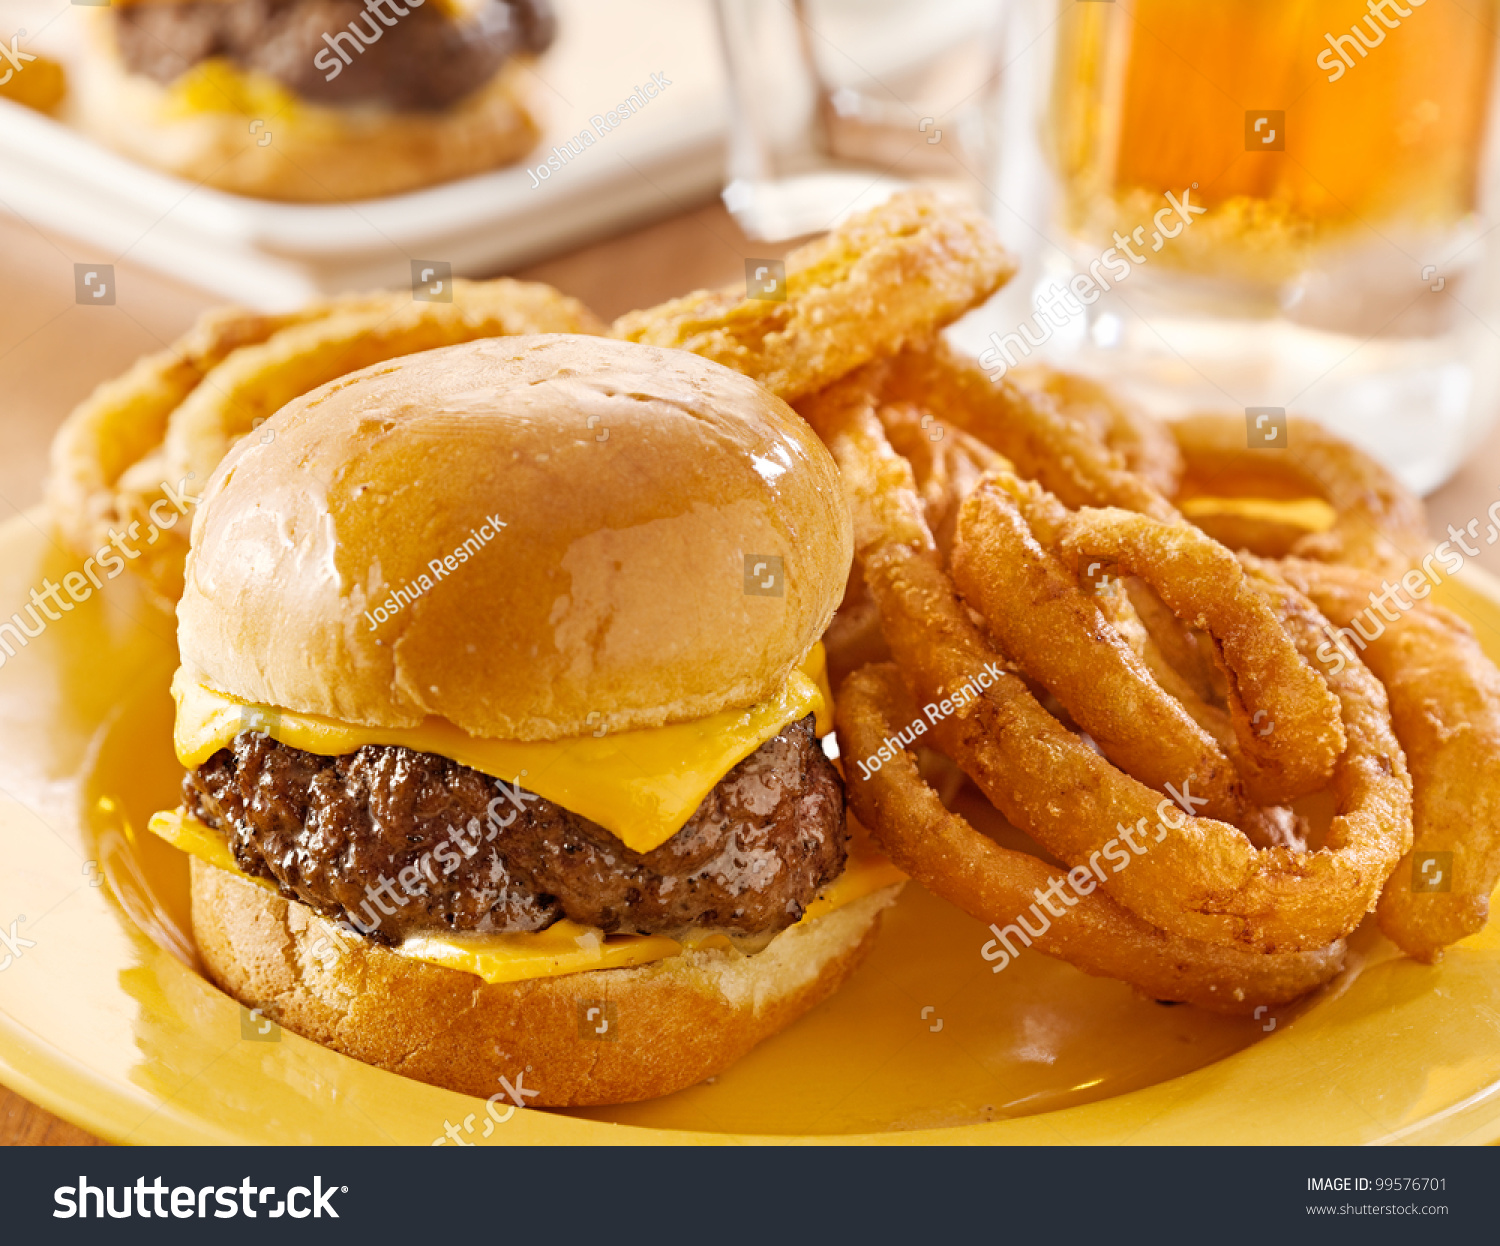 how to cut onion rings for burgers